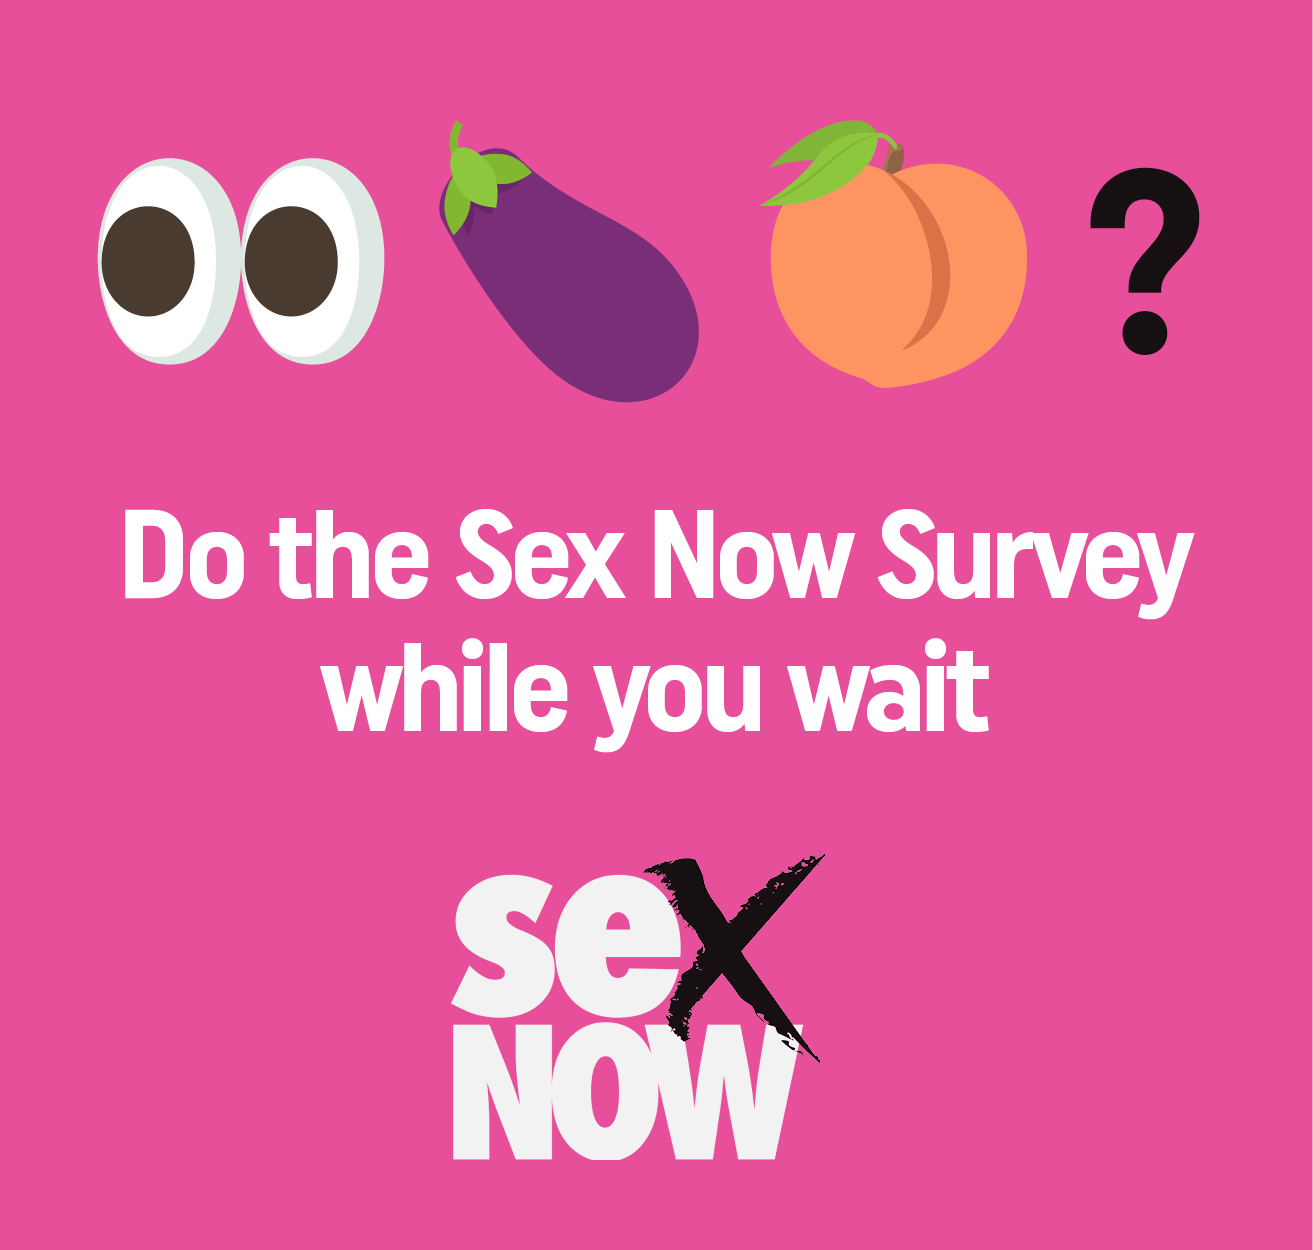 SexNow_Emoji2.png